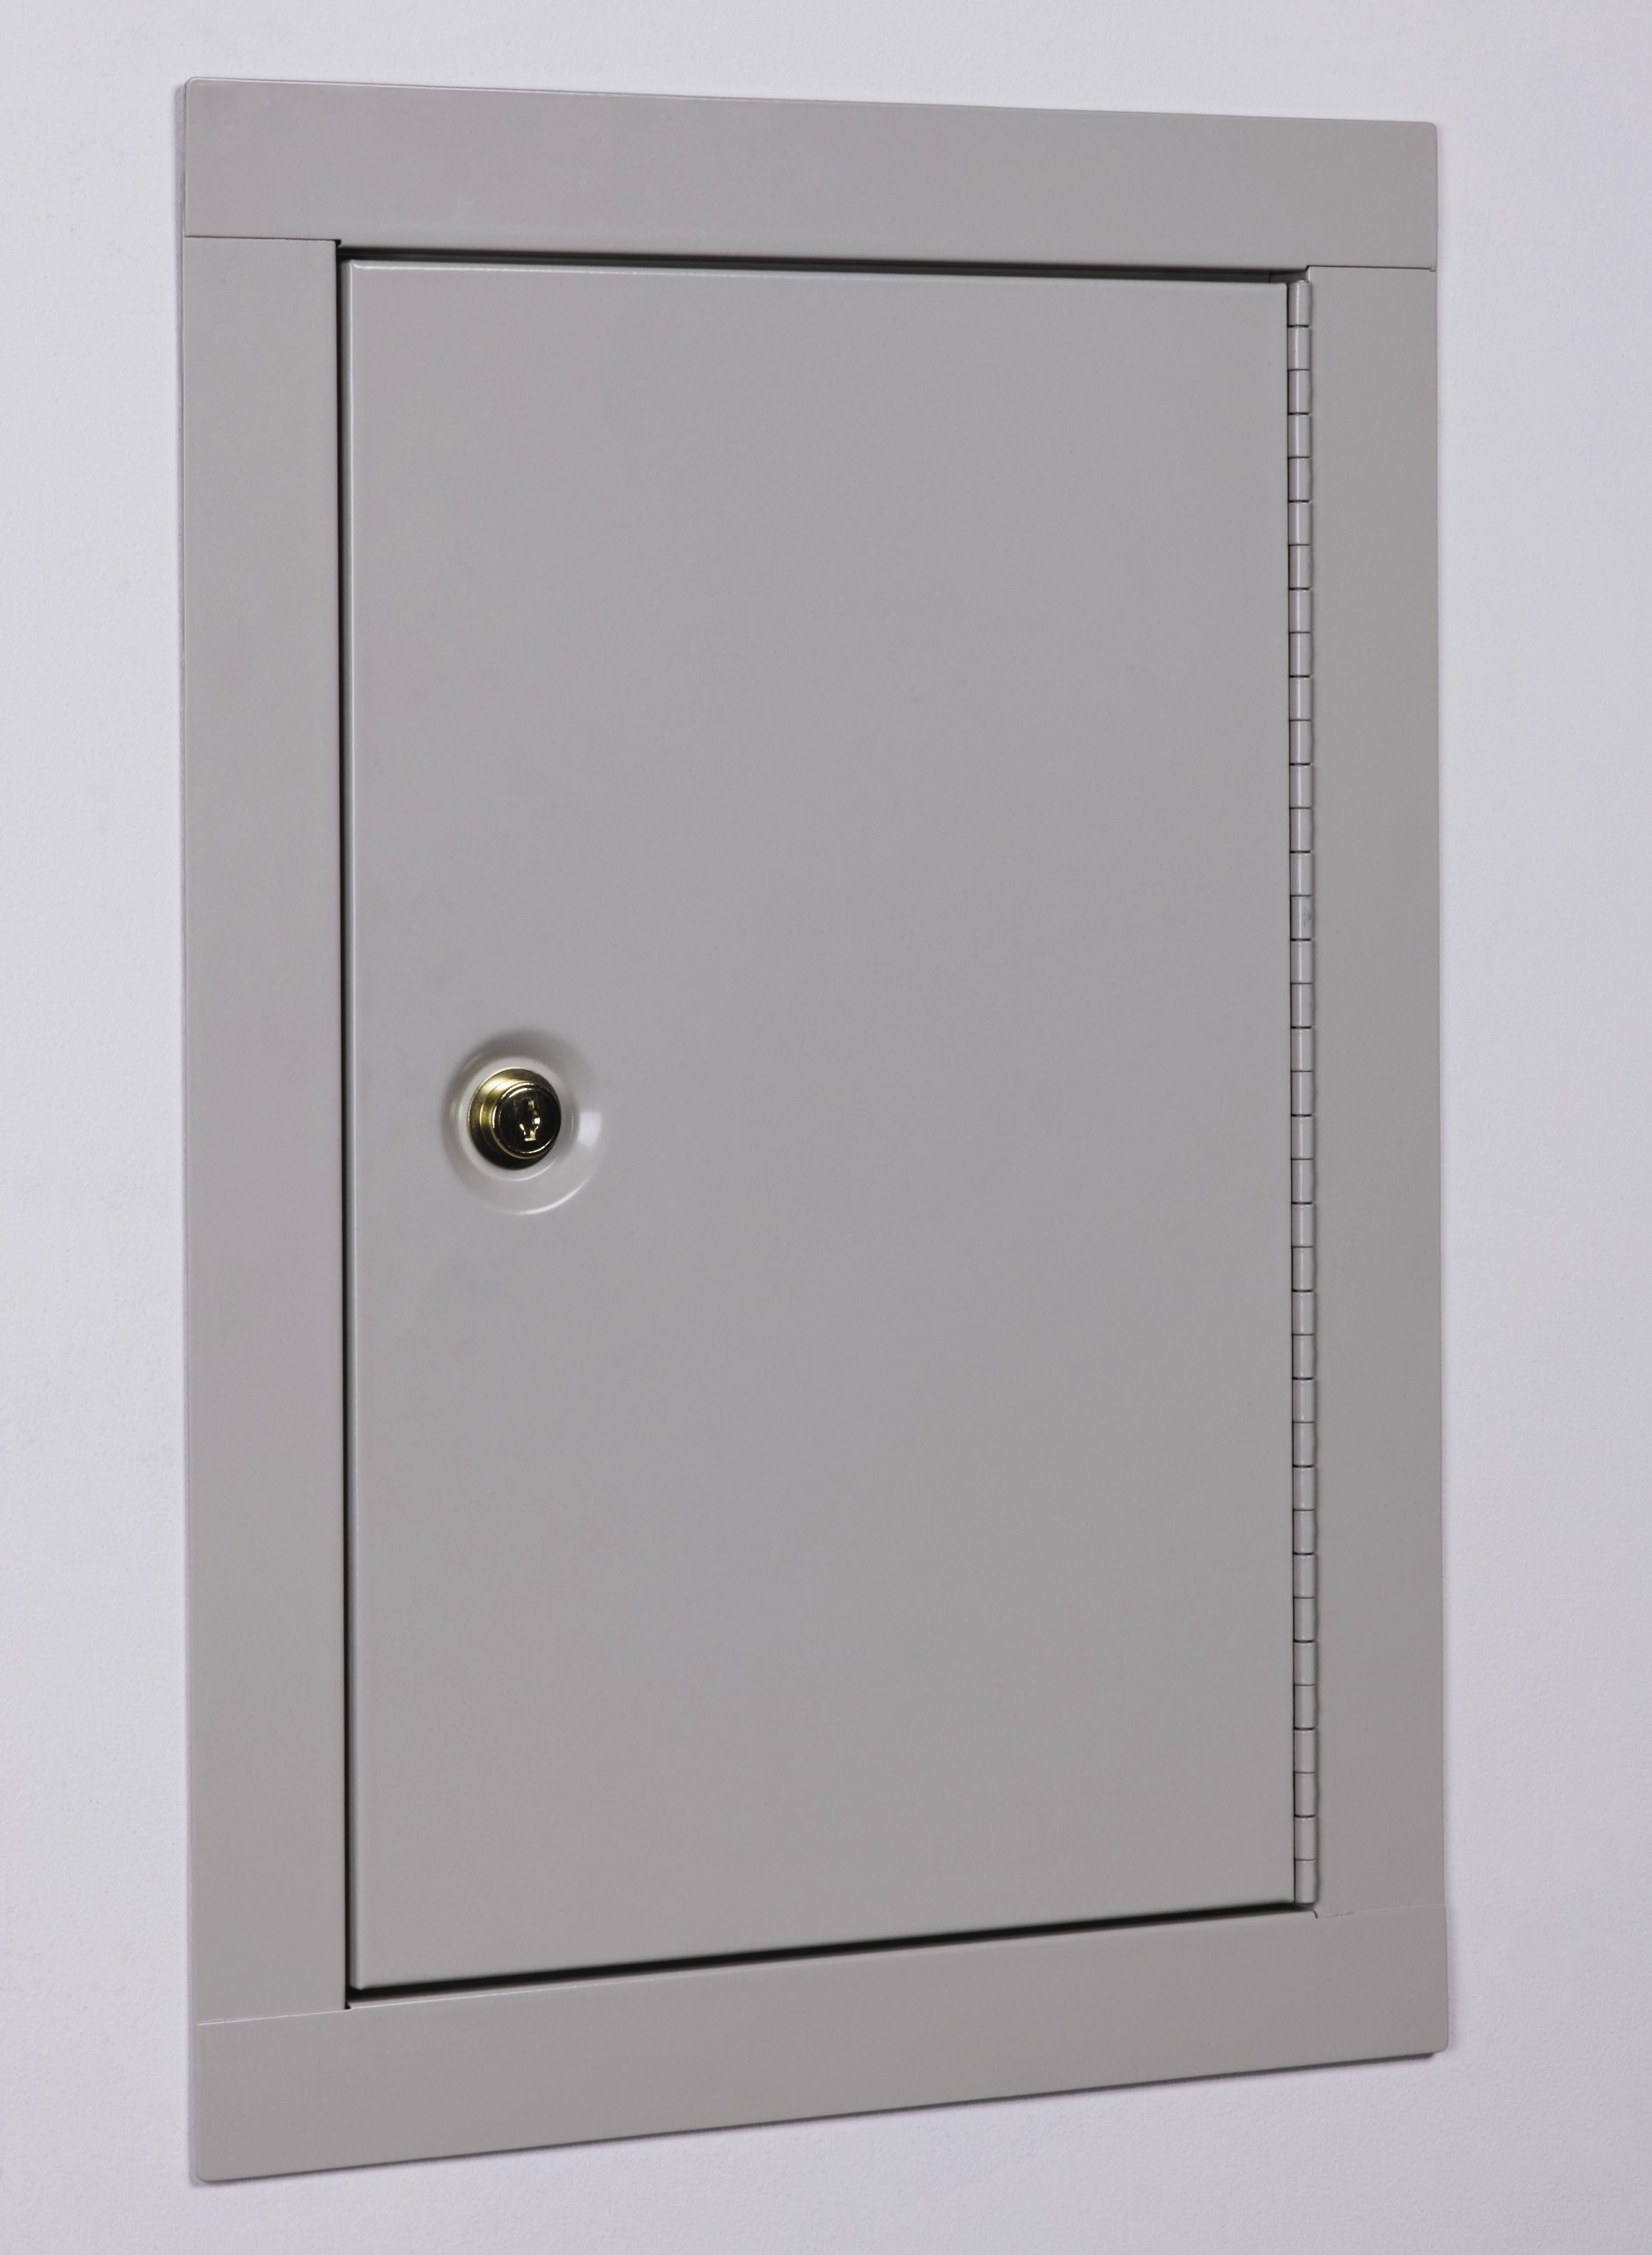 Stack-On IWC-22 in-Wall Cabinet by Stack-On